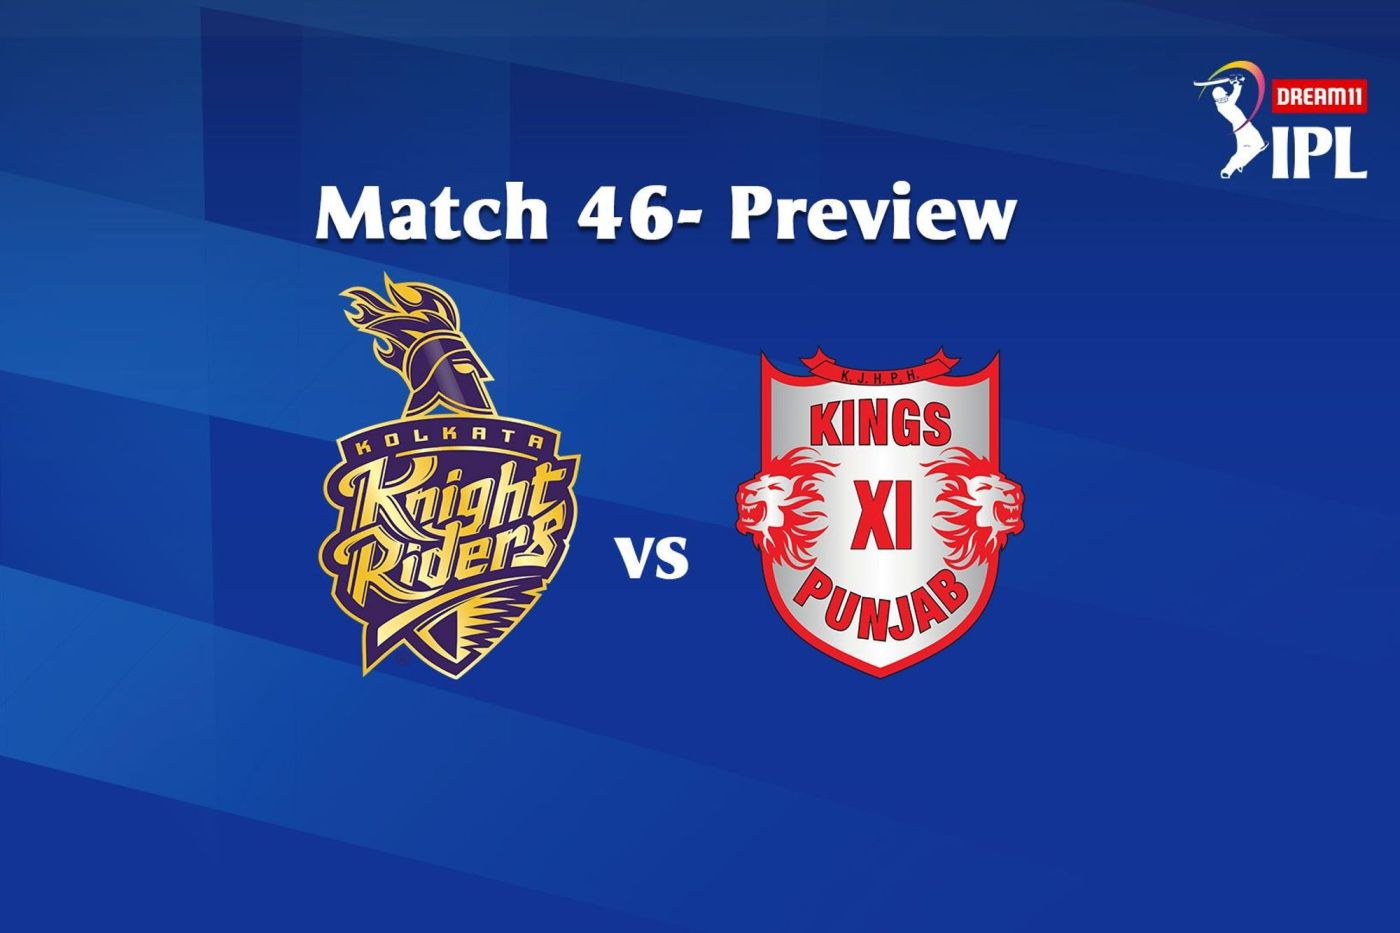 IPL 2020 Match 46: KKR VS KXIP, Match Prediction, Head-To-Head Stats And Will Andre Russell Play Today?